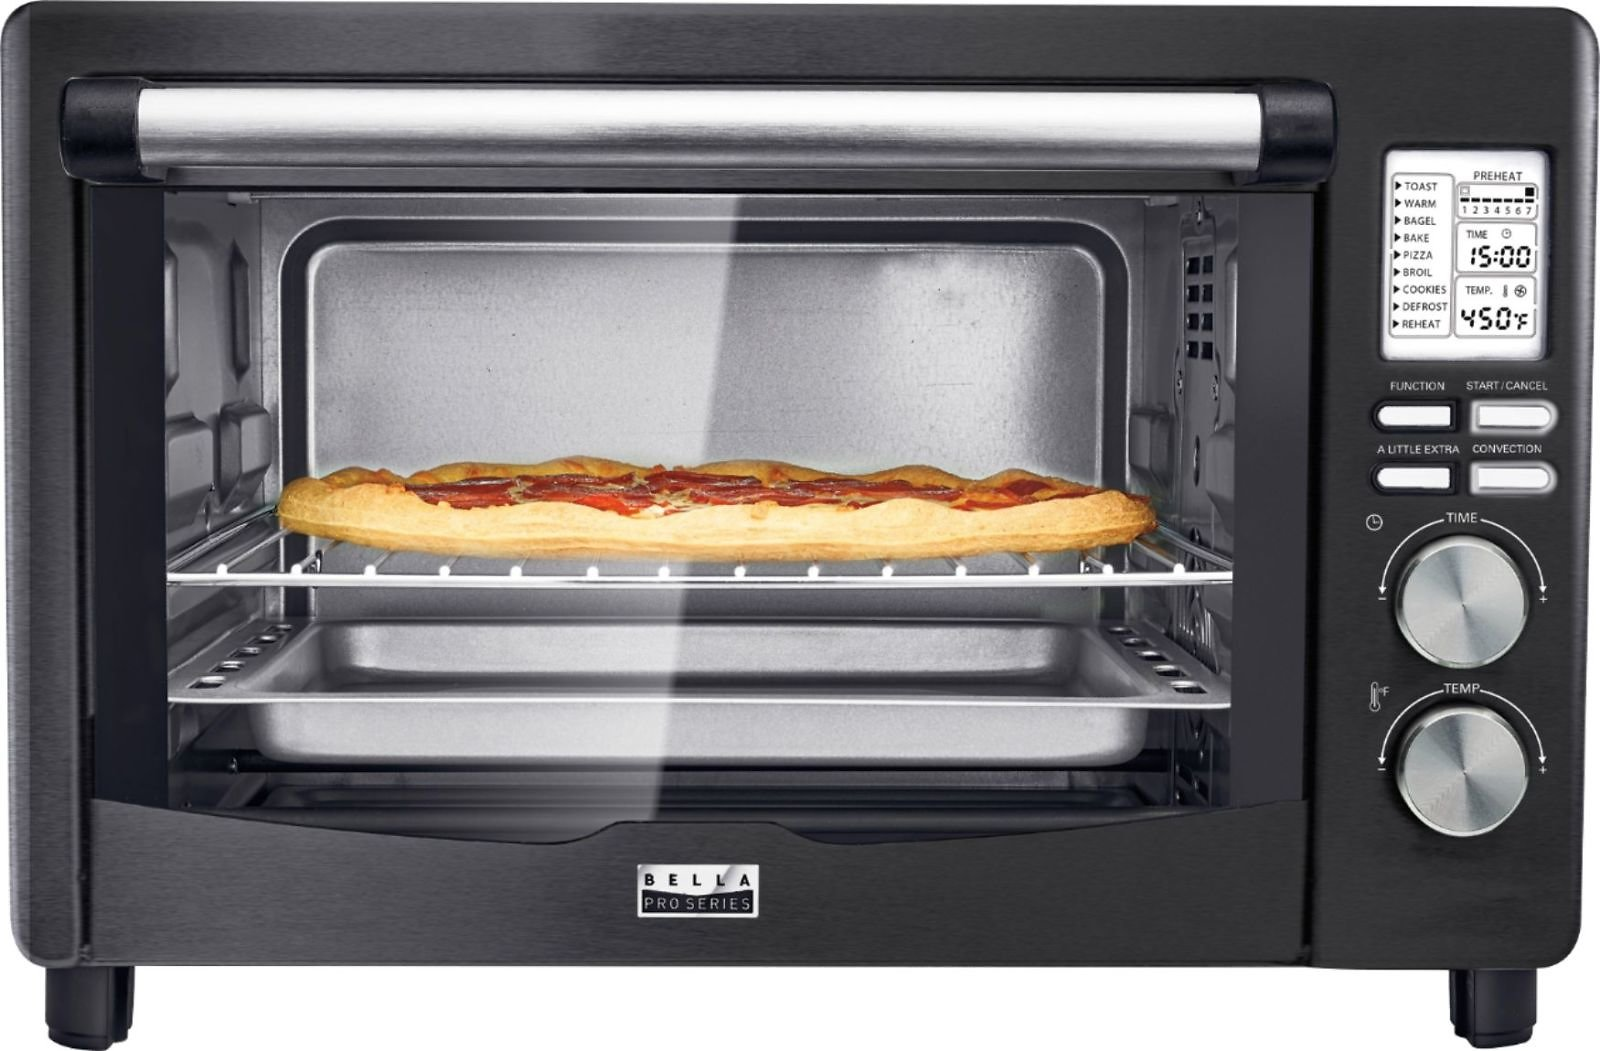 Bella Pro Series 6-Slice Toaster Oven Black Stainless Steel + F/S